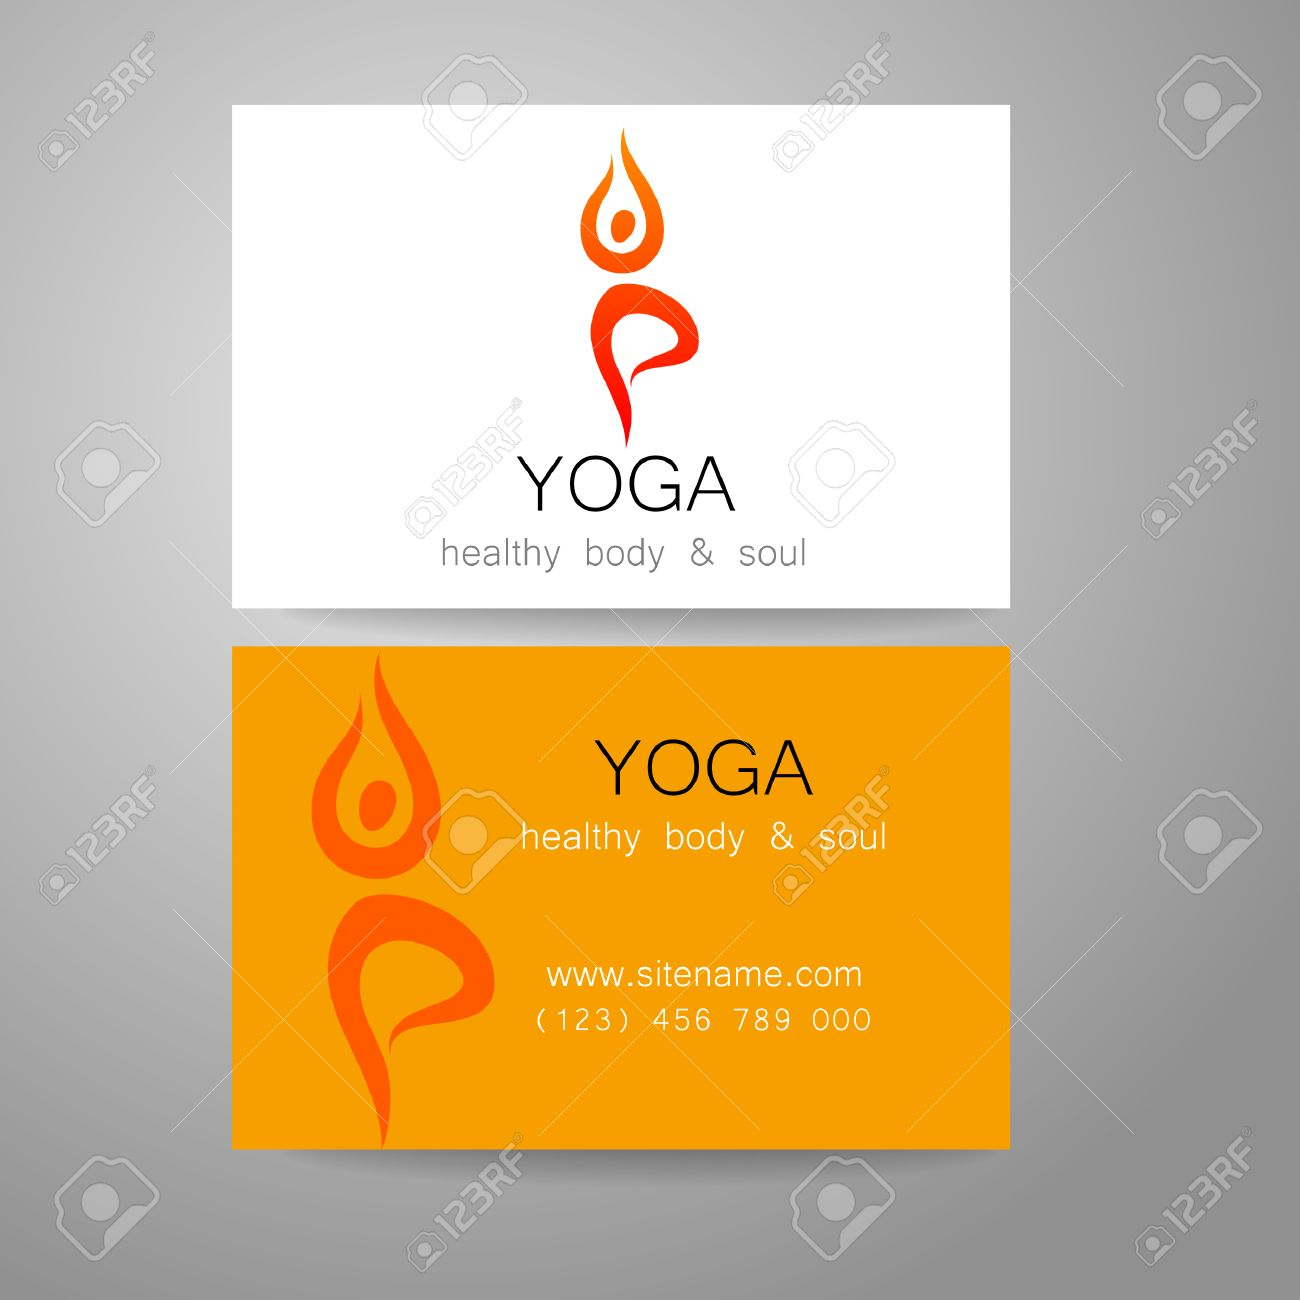 Colorful business cards logo ornament business card ideas etadam yoga logo sign design and business cards template for yoga colourmoves